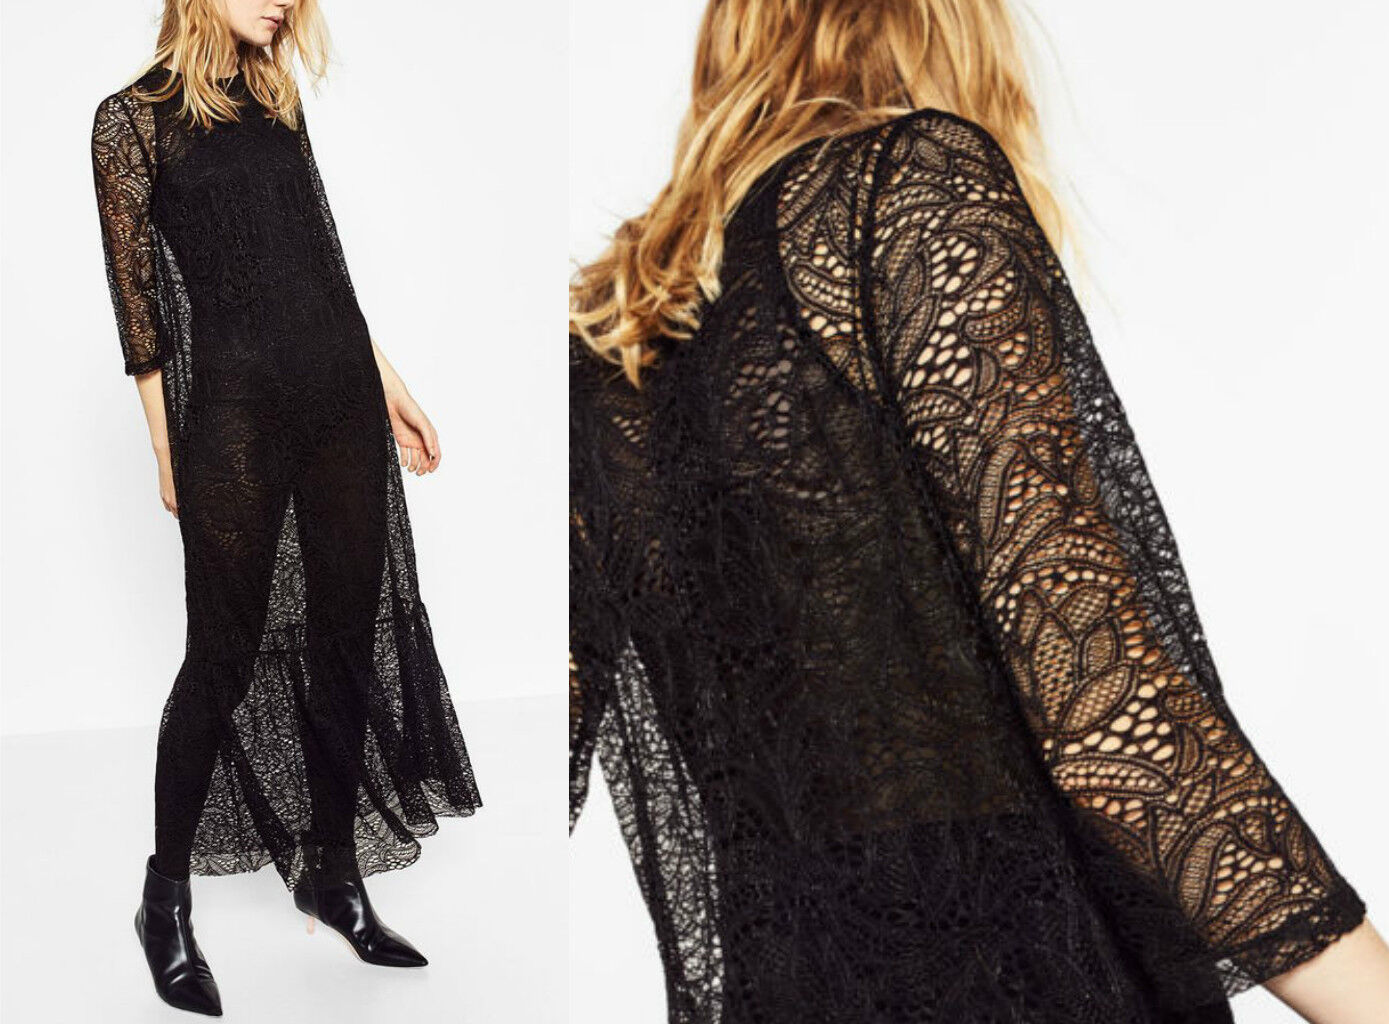 Zara LACE MAXI LONG DRESS Frilled Hem abito in pizzo pizzo volant S M